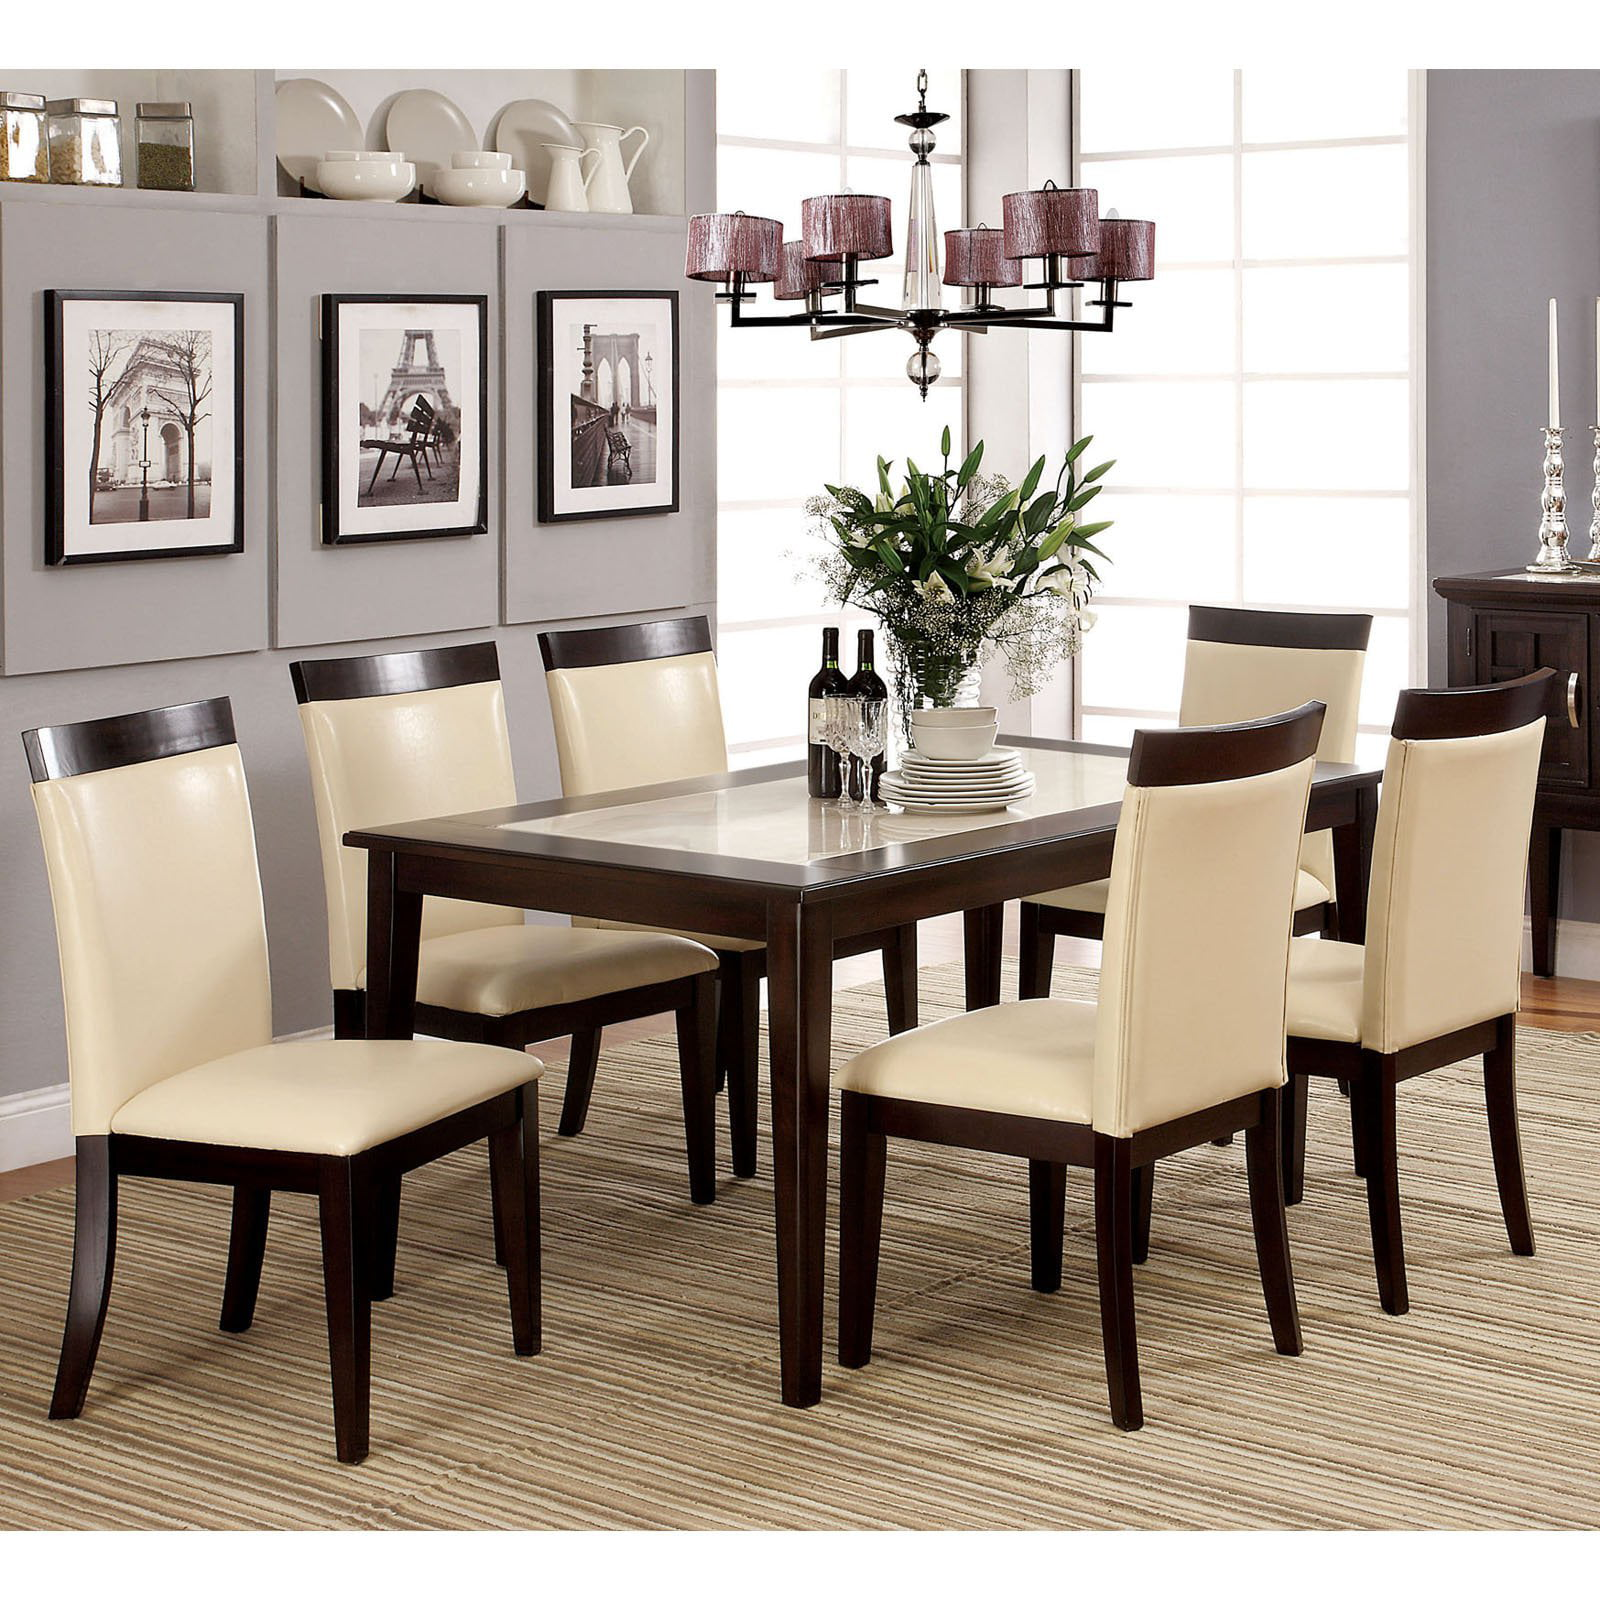 Mainstays 5 Piece Faux Marble Top Dining Set